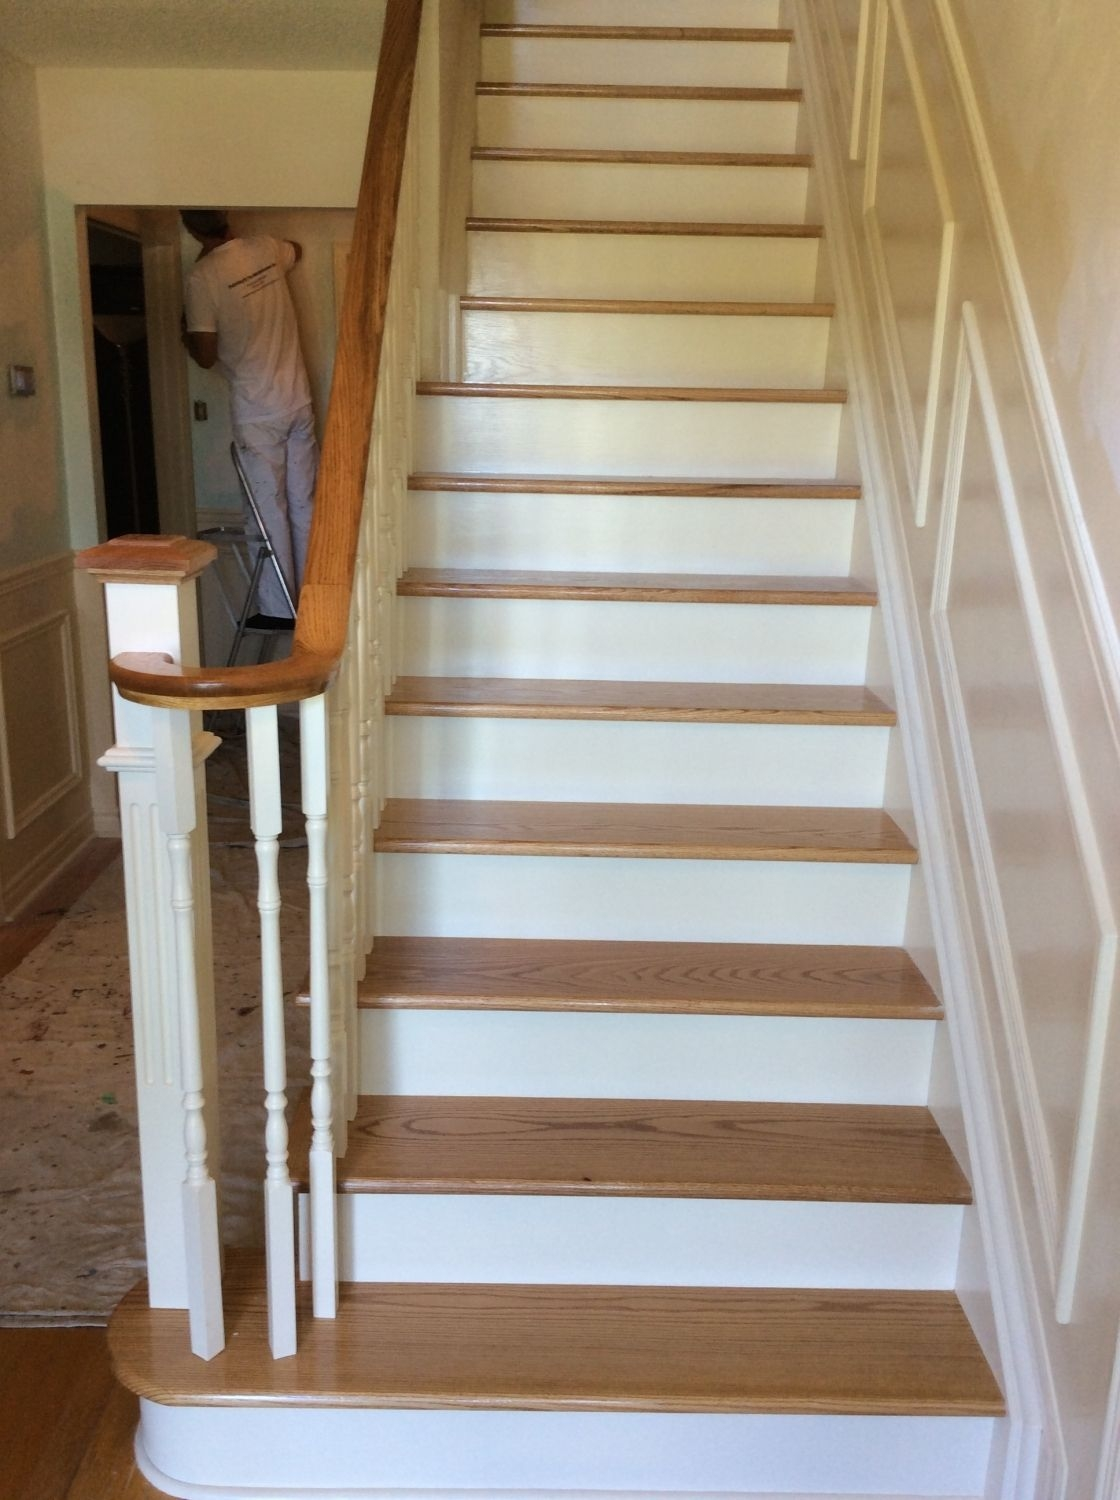 This Oak Staircase Is Straight Two Tone Natural Oak   Wood Stairs With White Risers